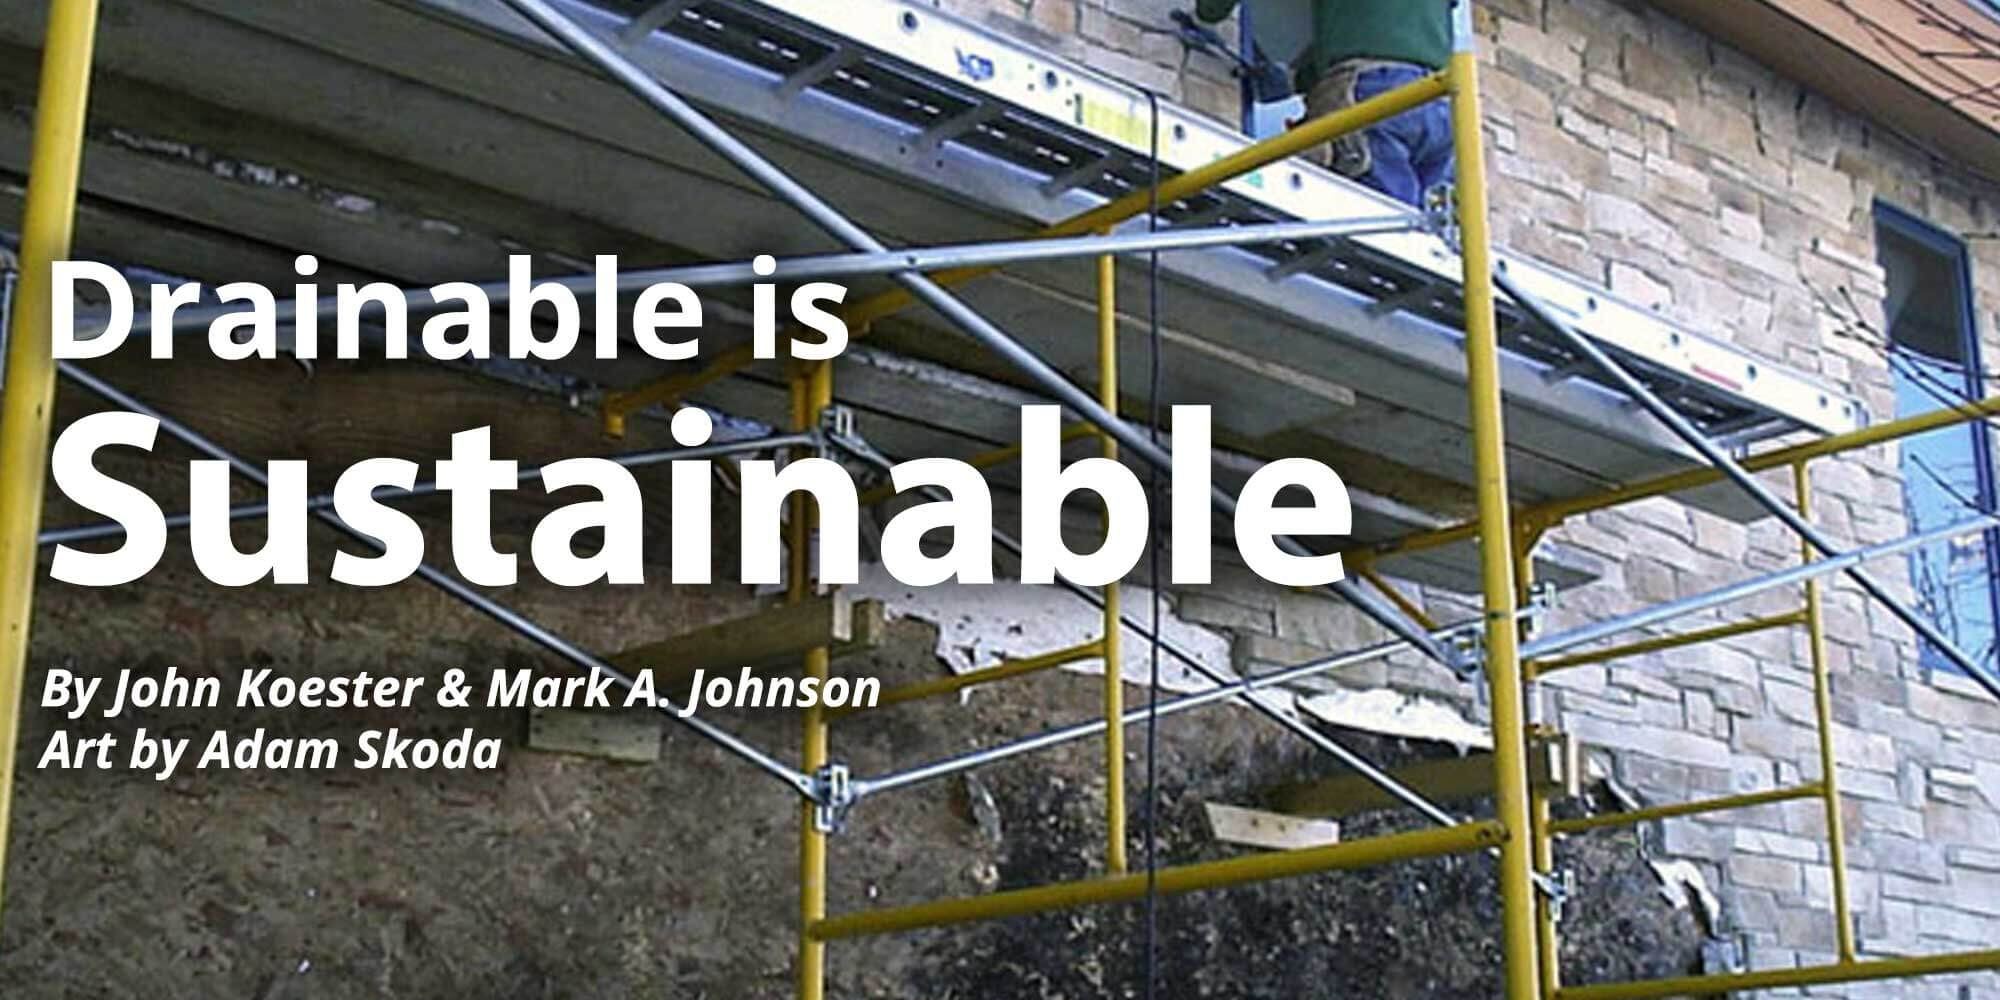 Drainable is Sustainable